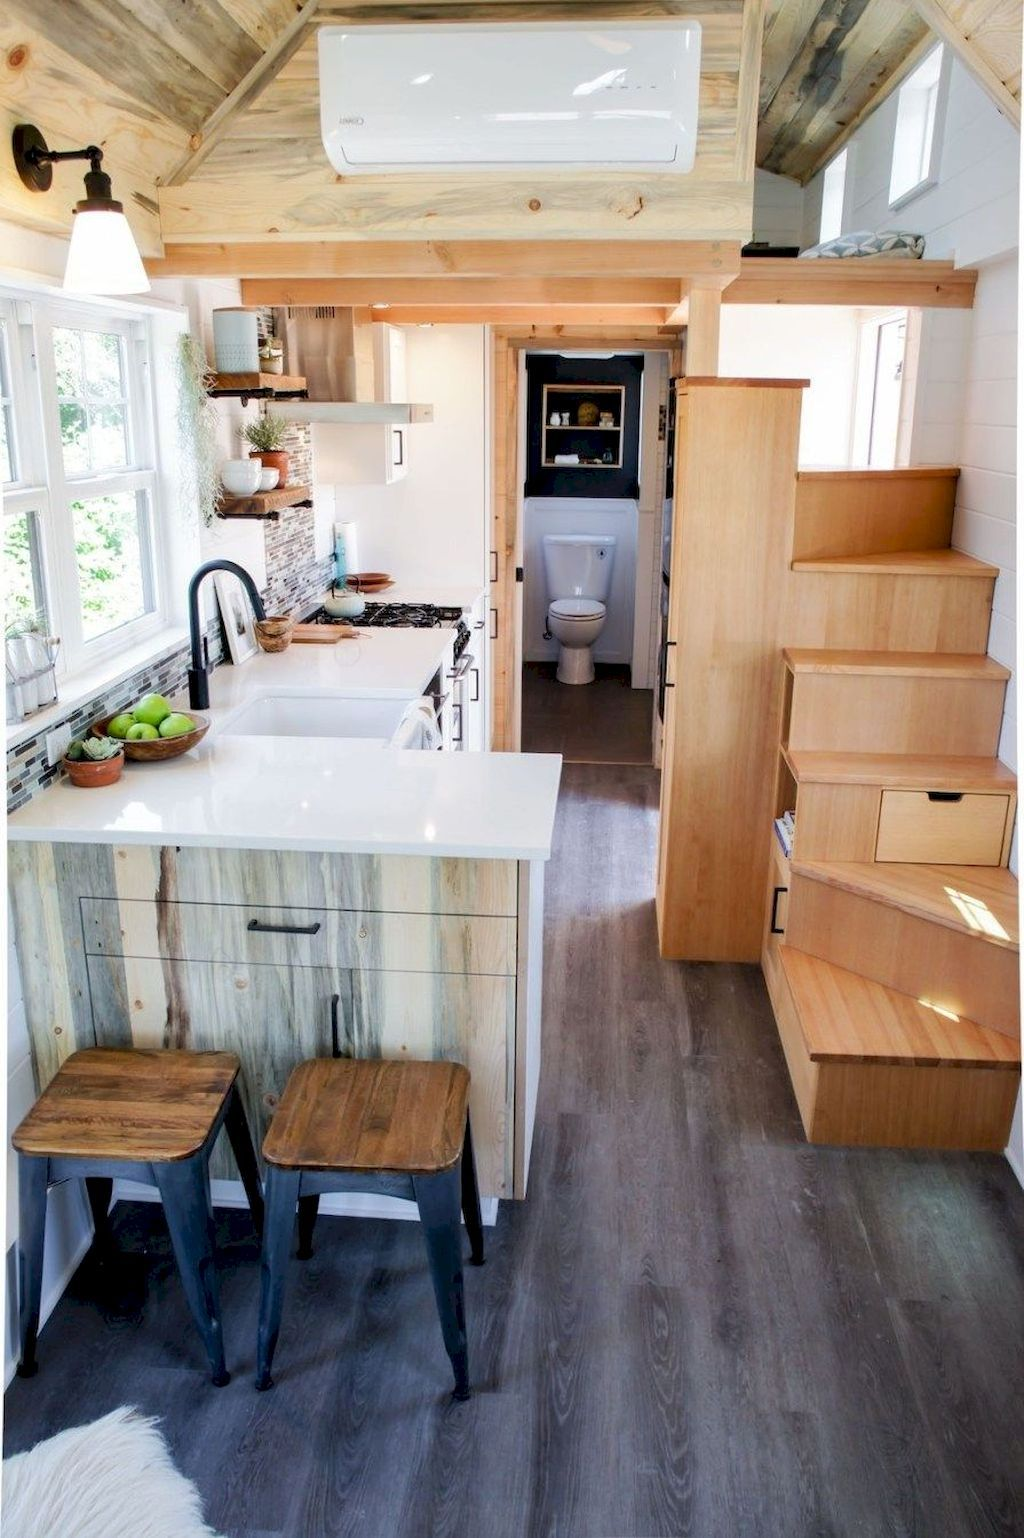 60 Tiny House Kitchen Storage Organization and Tips Ideas images